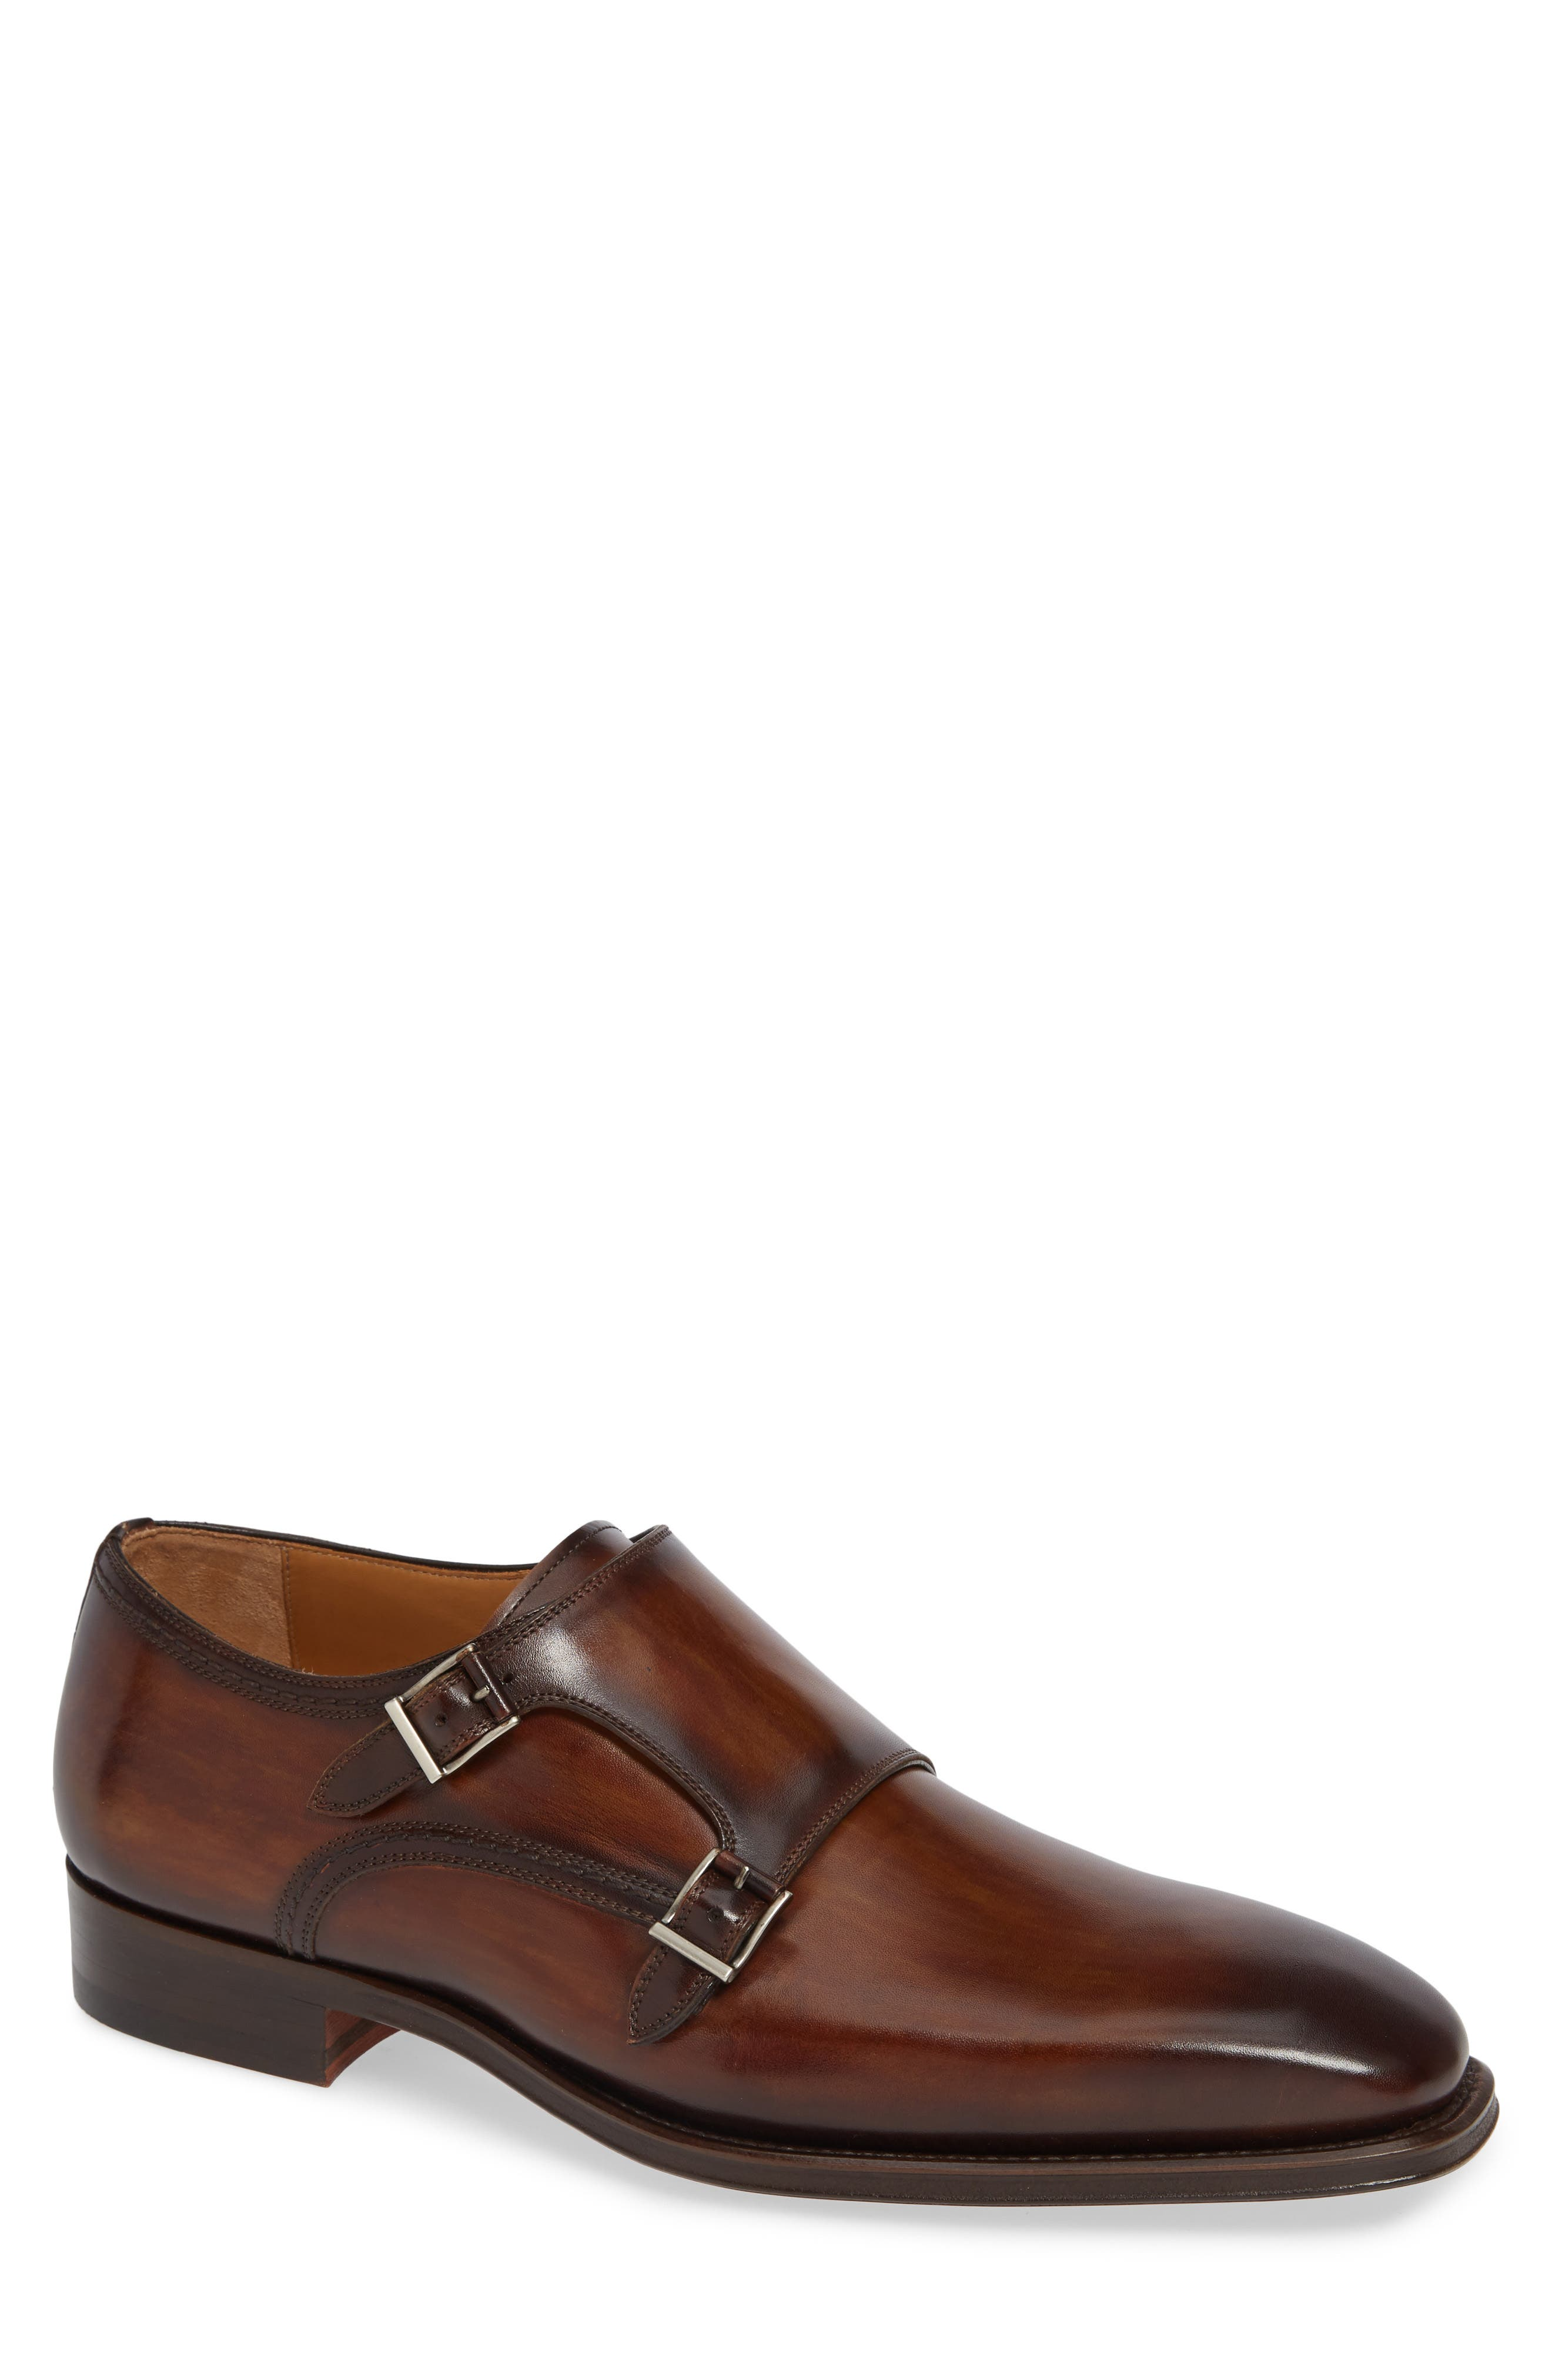 ,                             Landon Double Strap Monk Shoe,                             Main thumbnail 16, color,                             240